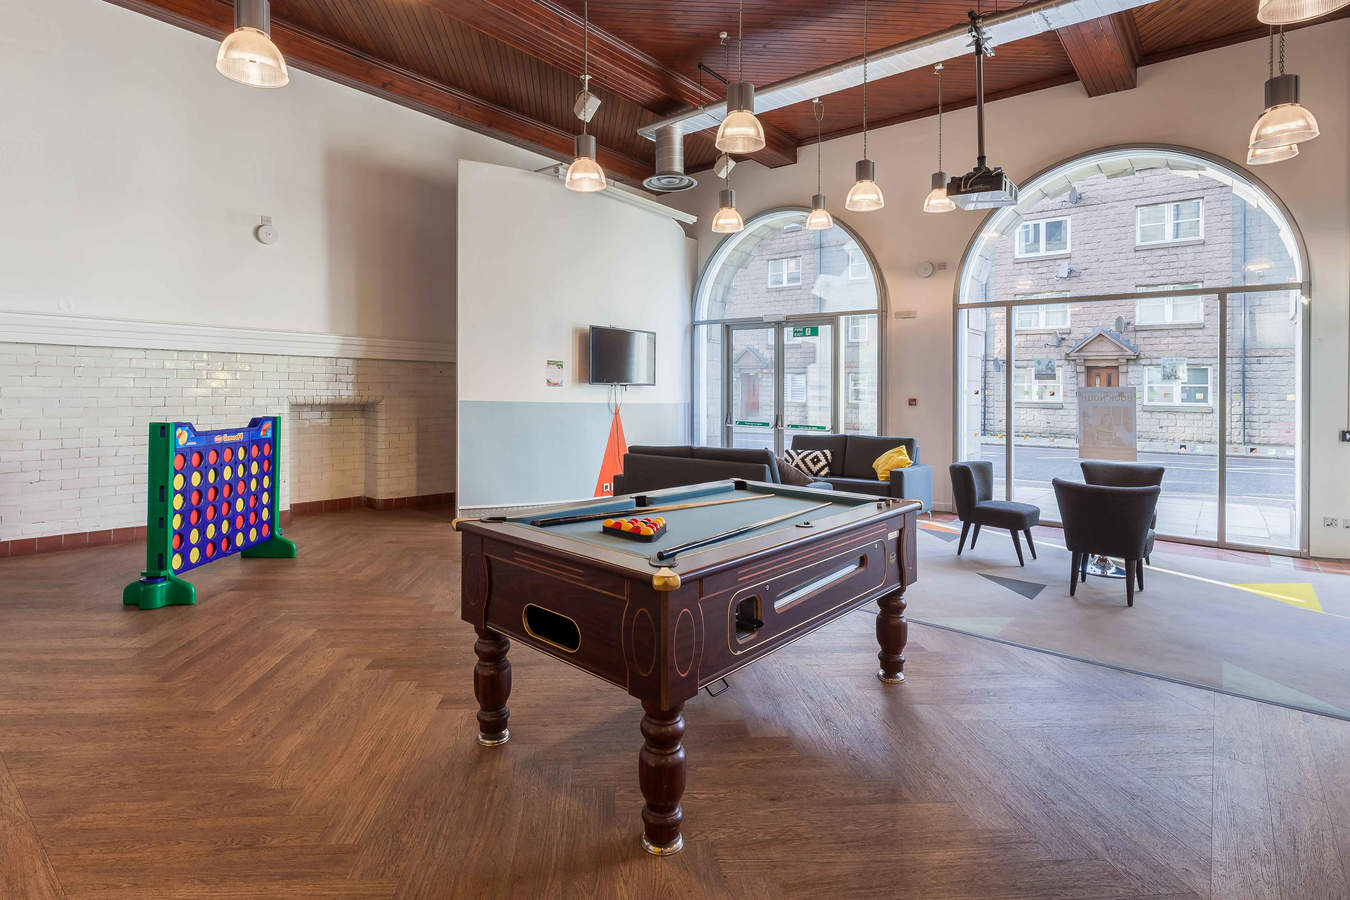 Unite_students_-_aberdeen_old_fire_station_-_stills_-_common_room_-_high_res_-_5_converted